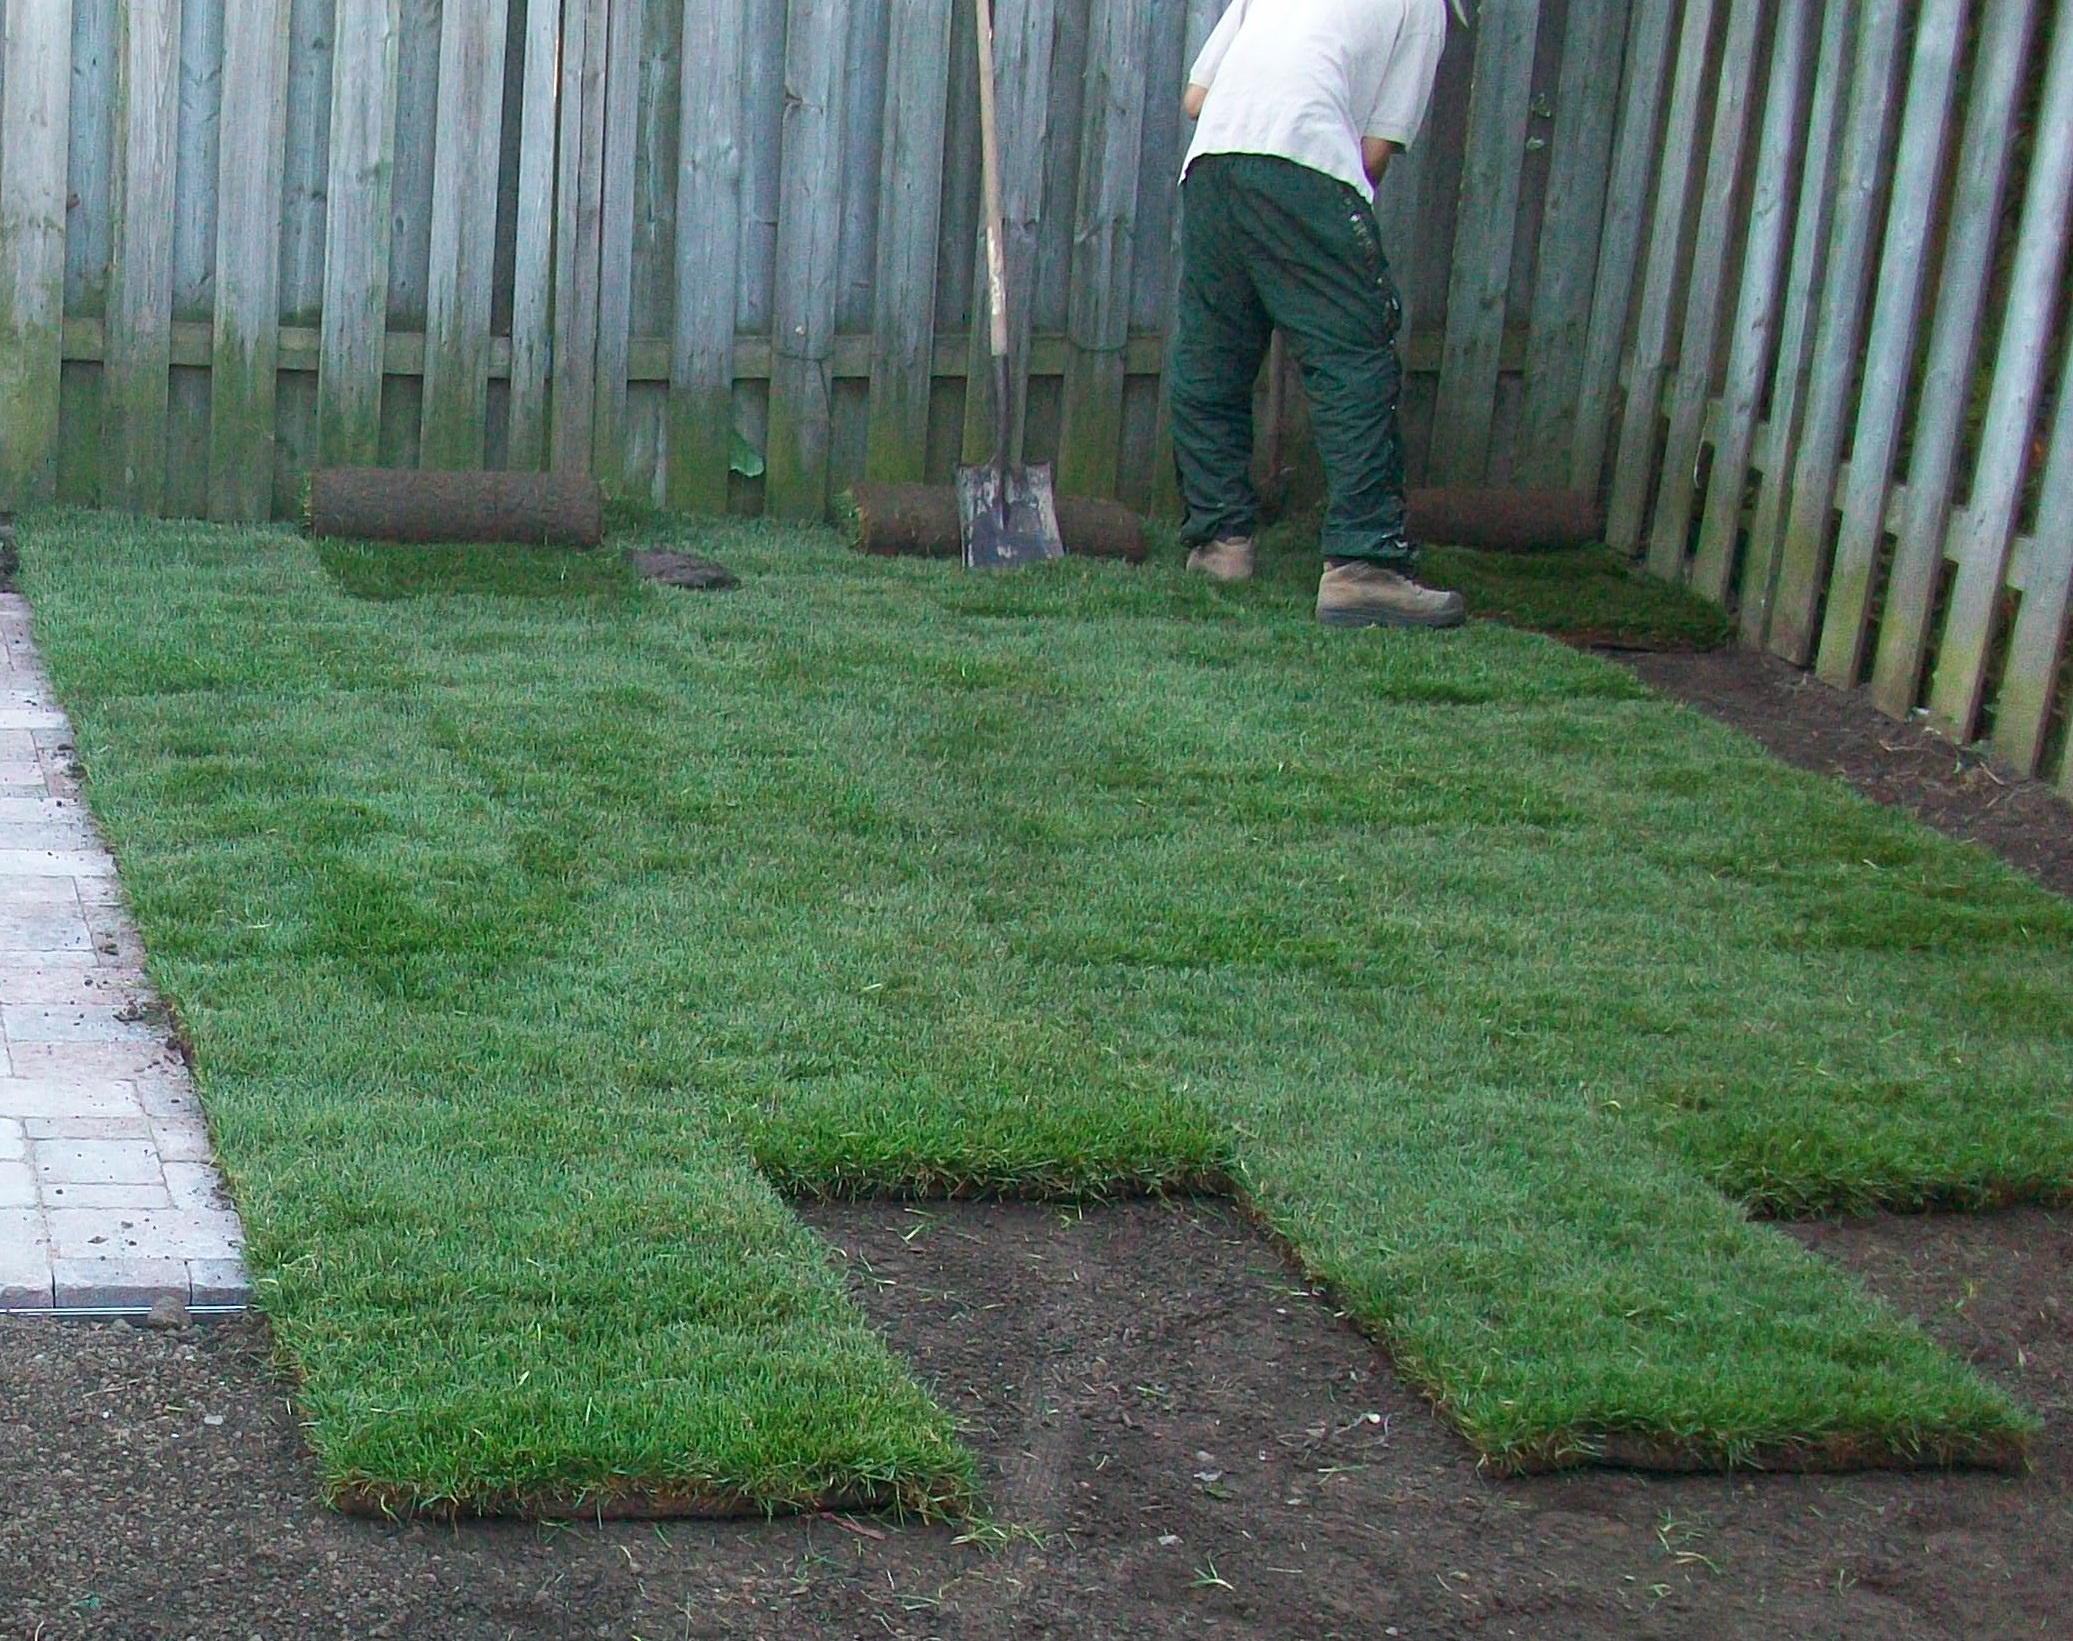 Resodding a lawn